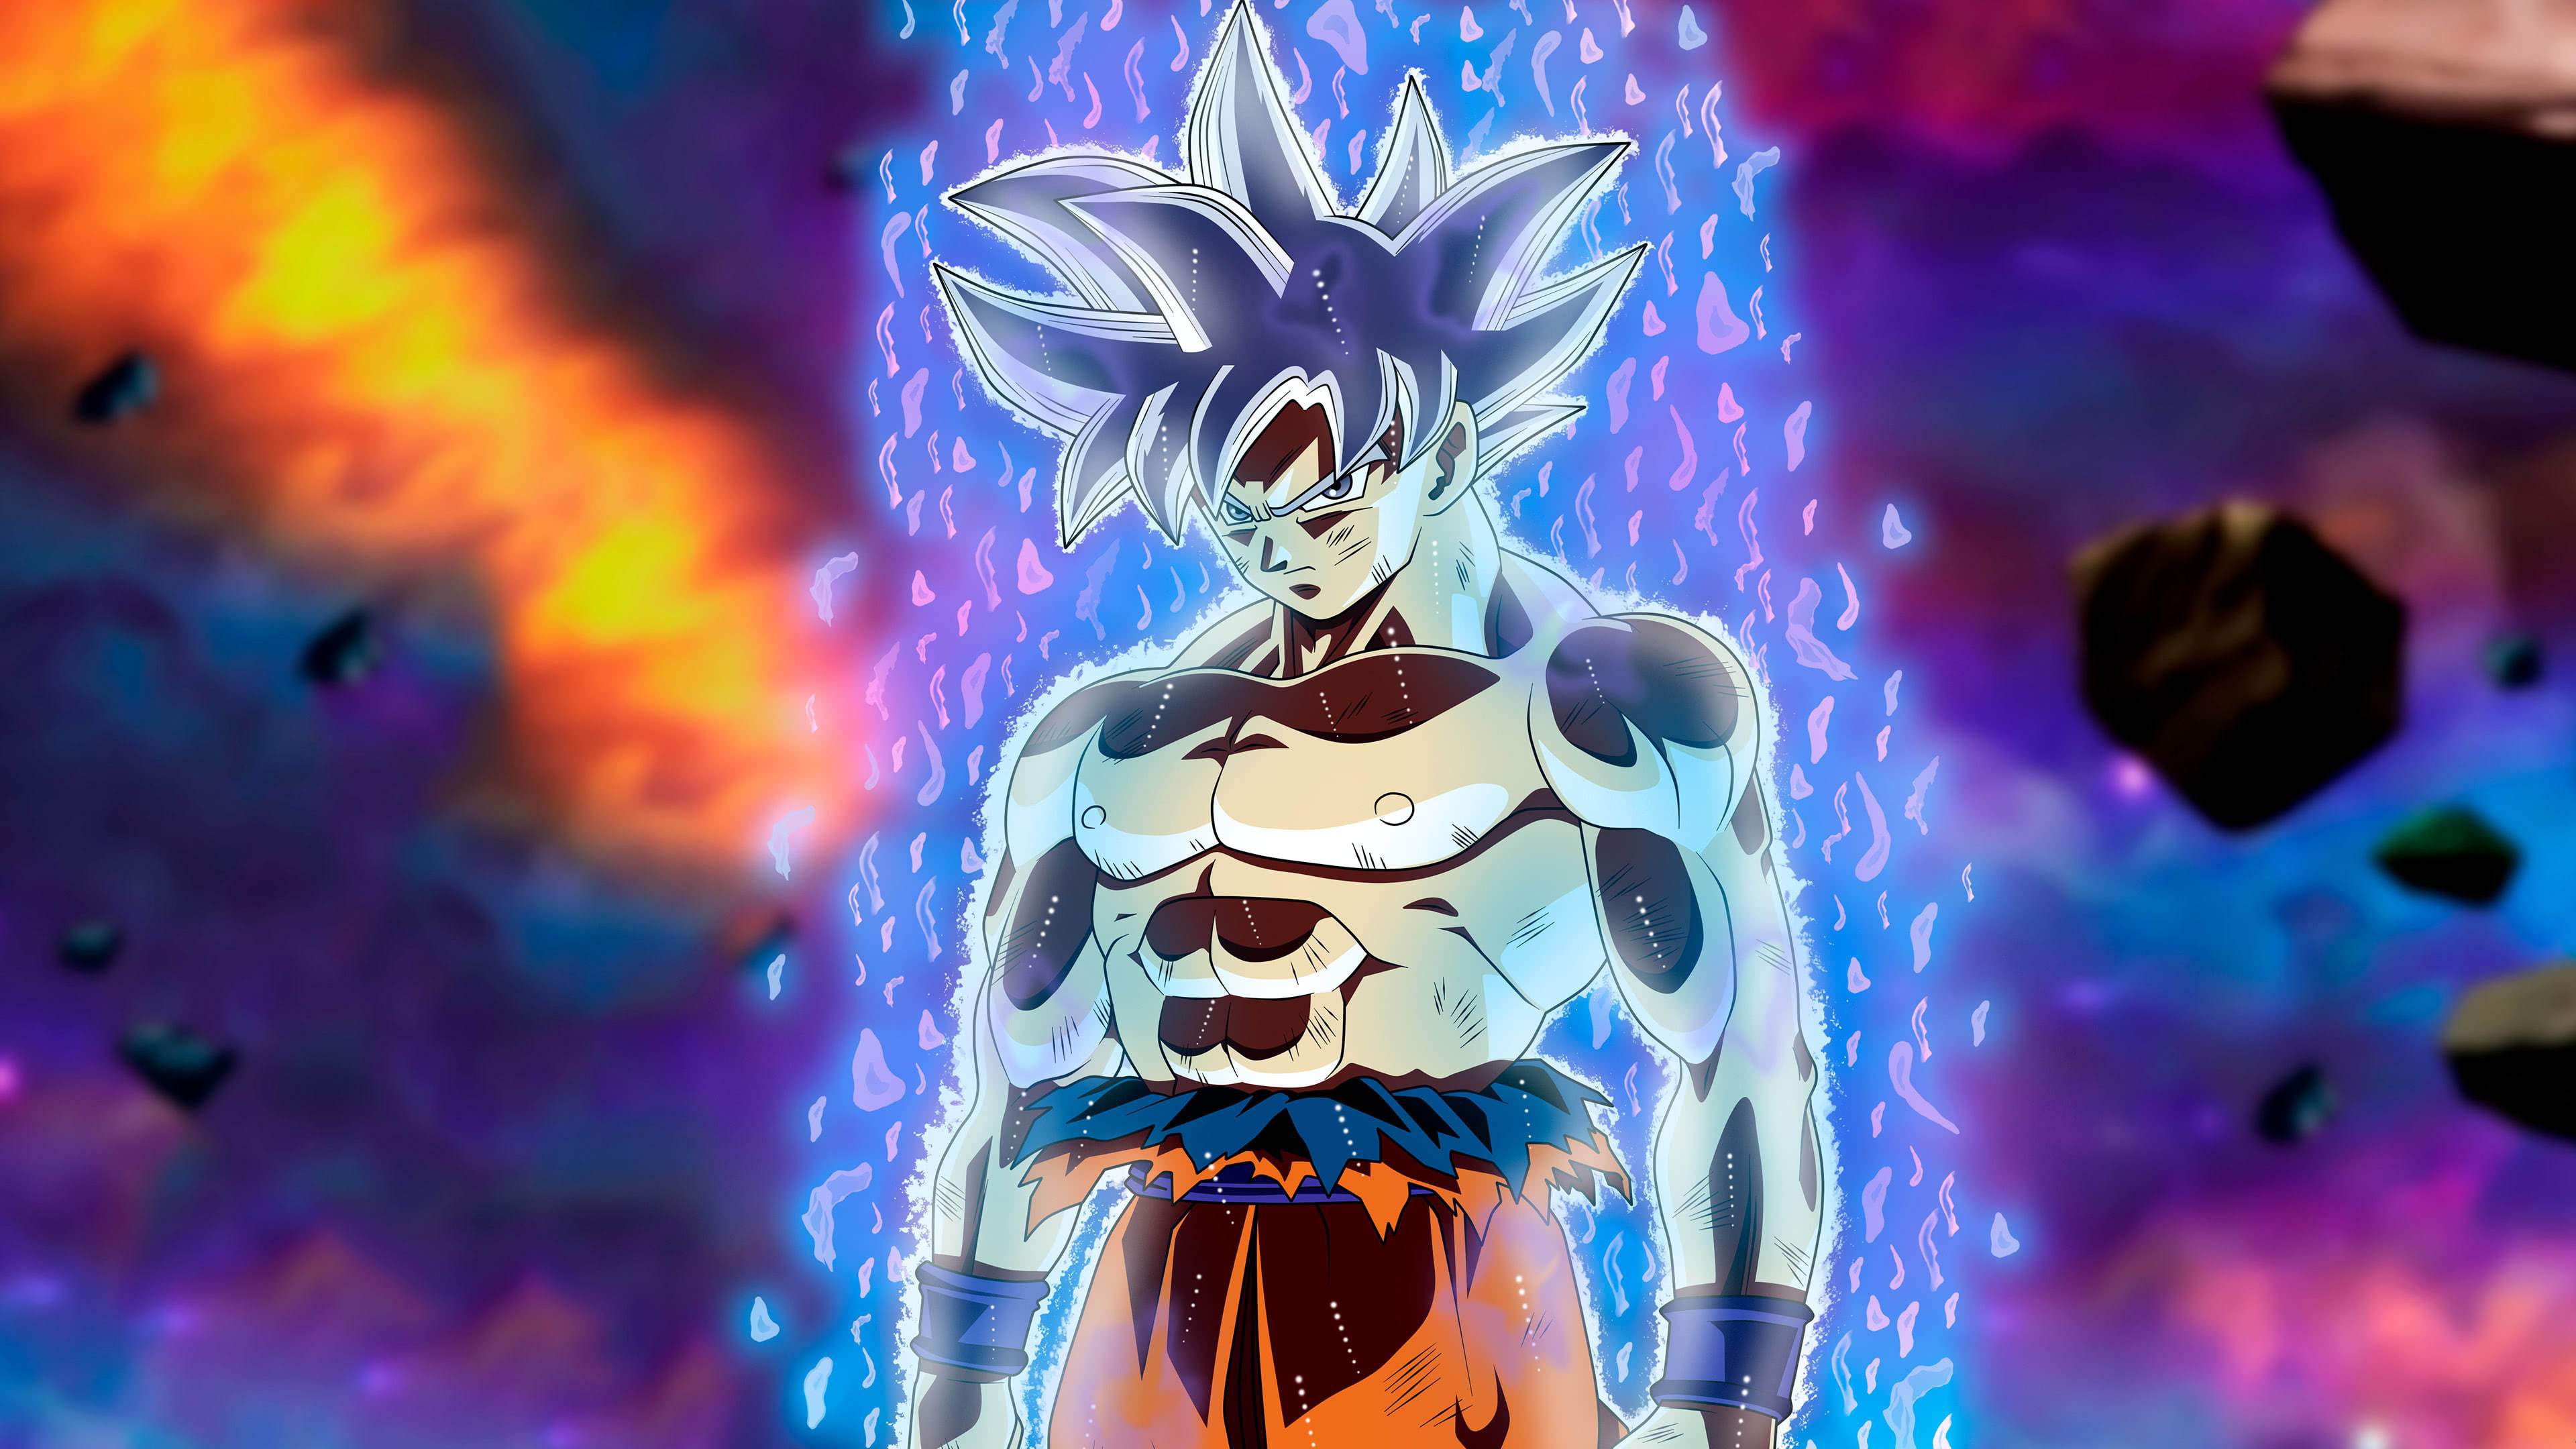 Dragon Ball Super Ultra Instinct Goku Uhd 4k Wallpaper Pixelz